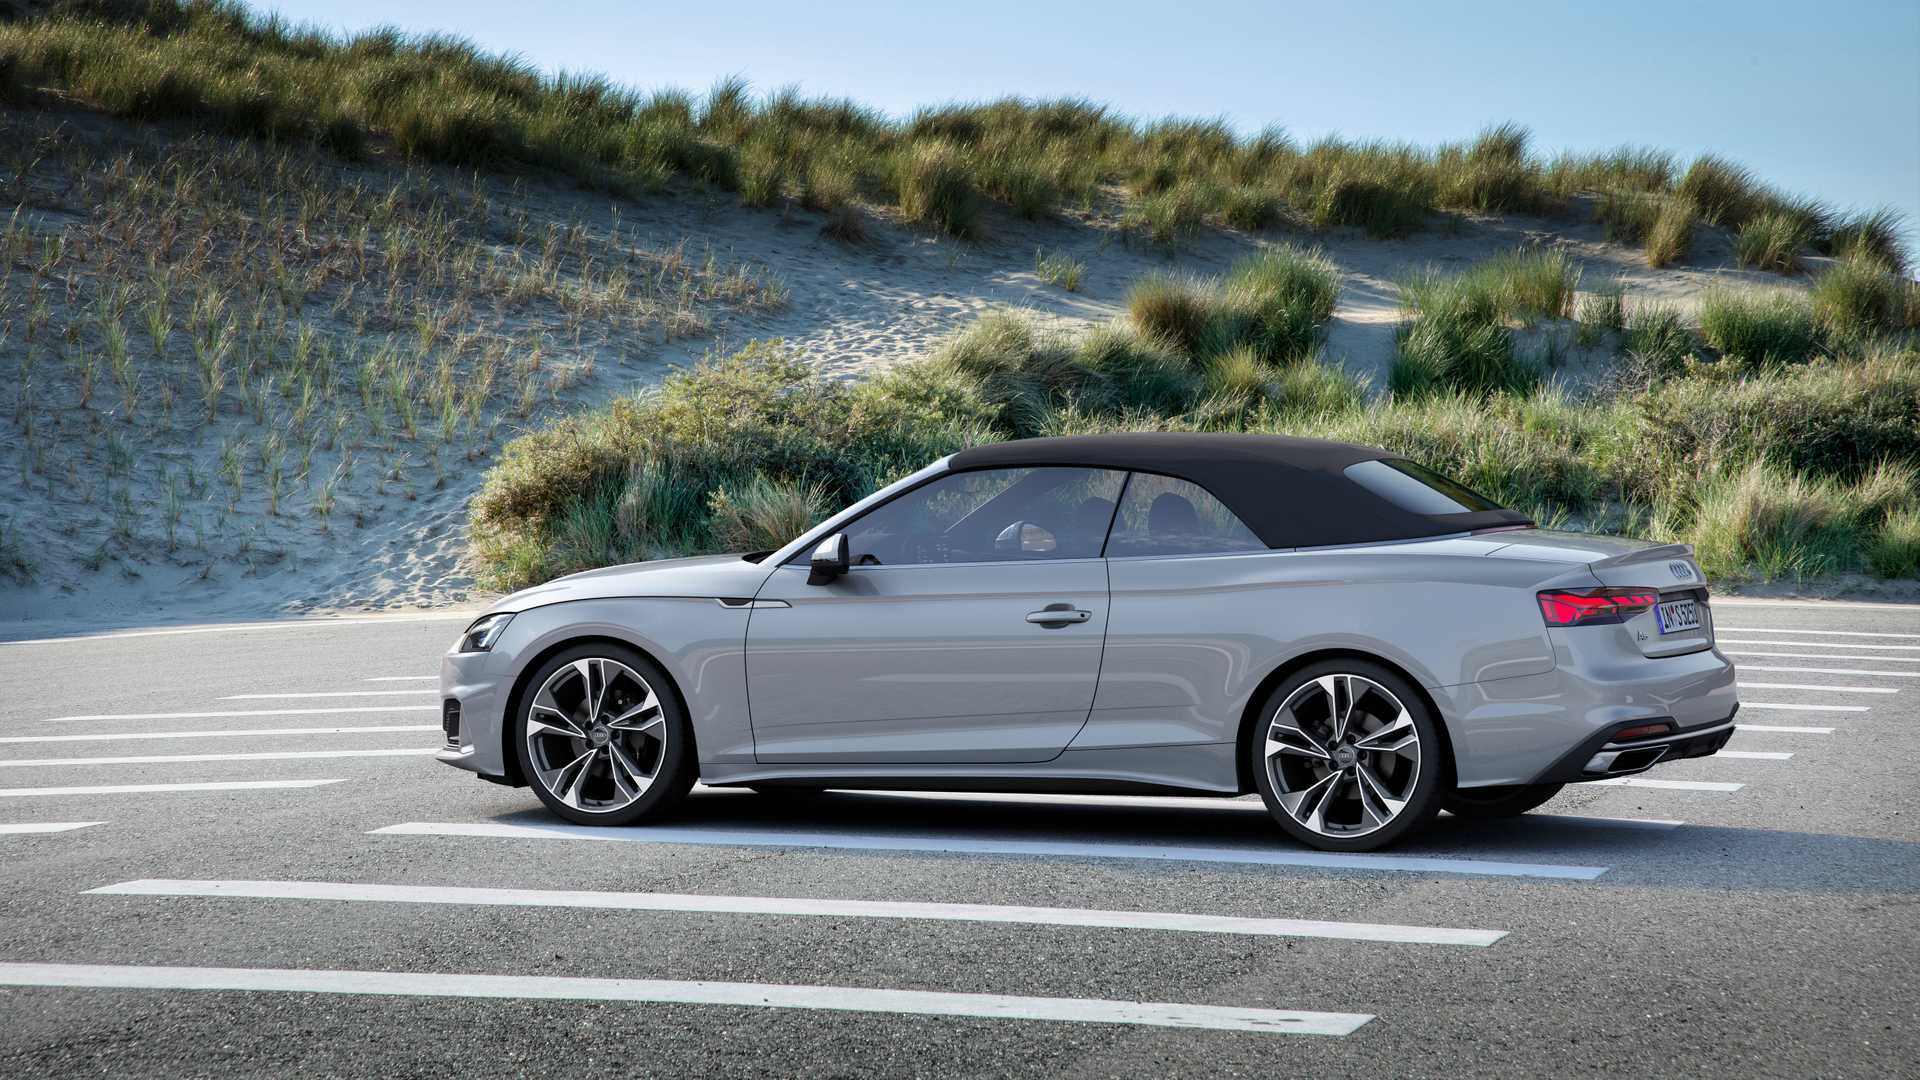 2020 Audi Rs5 Cabriolet Release Date and Concept